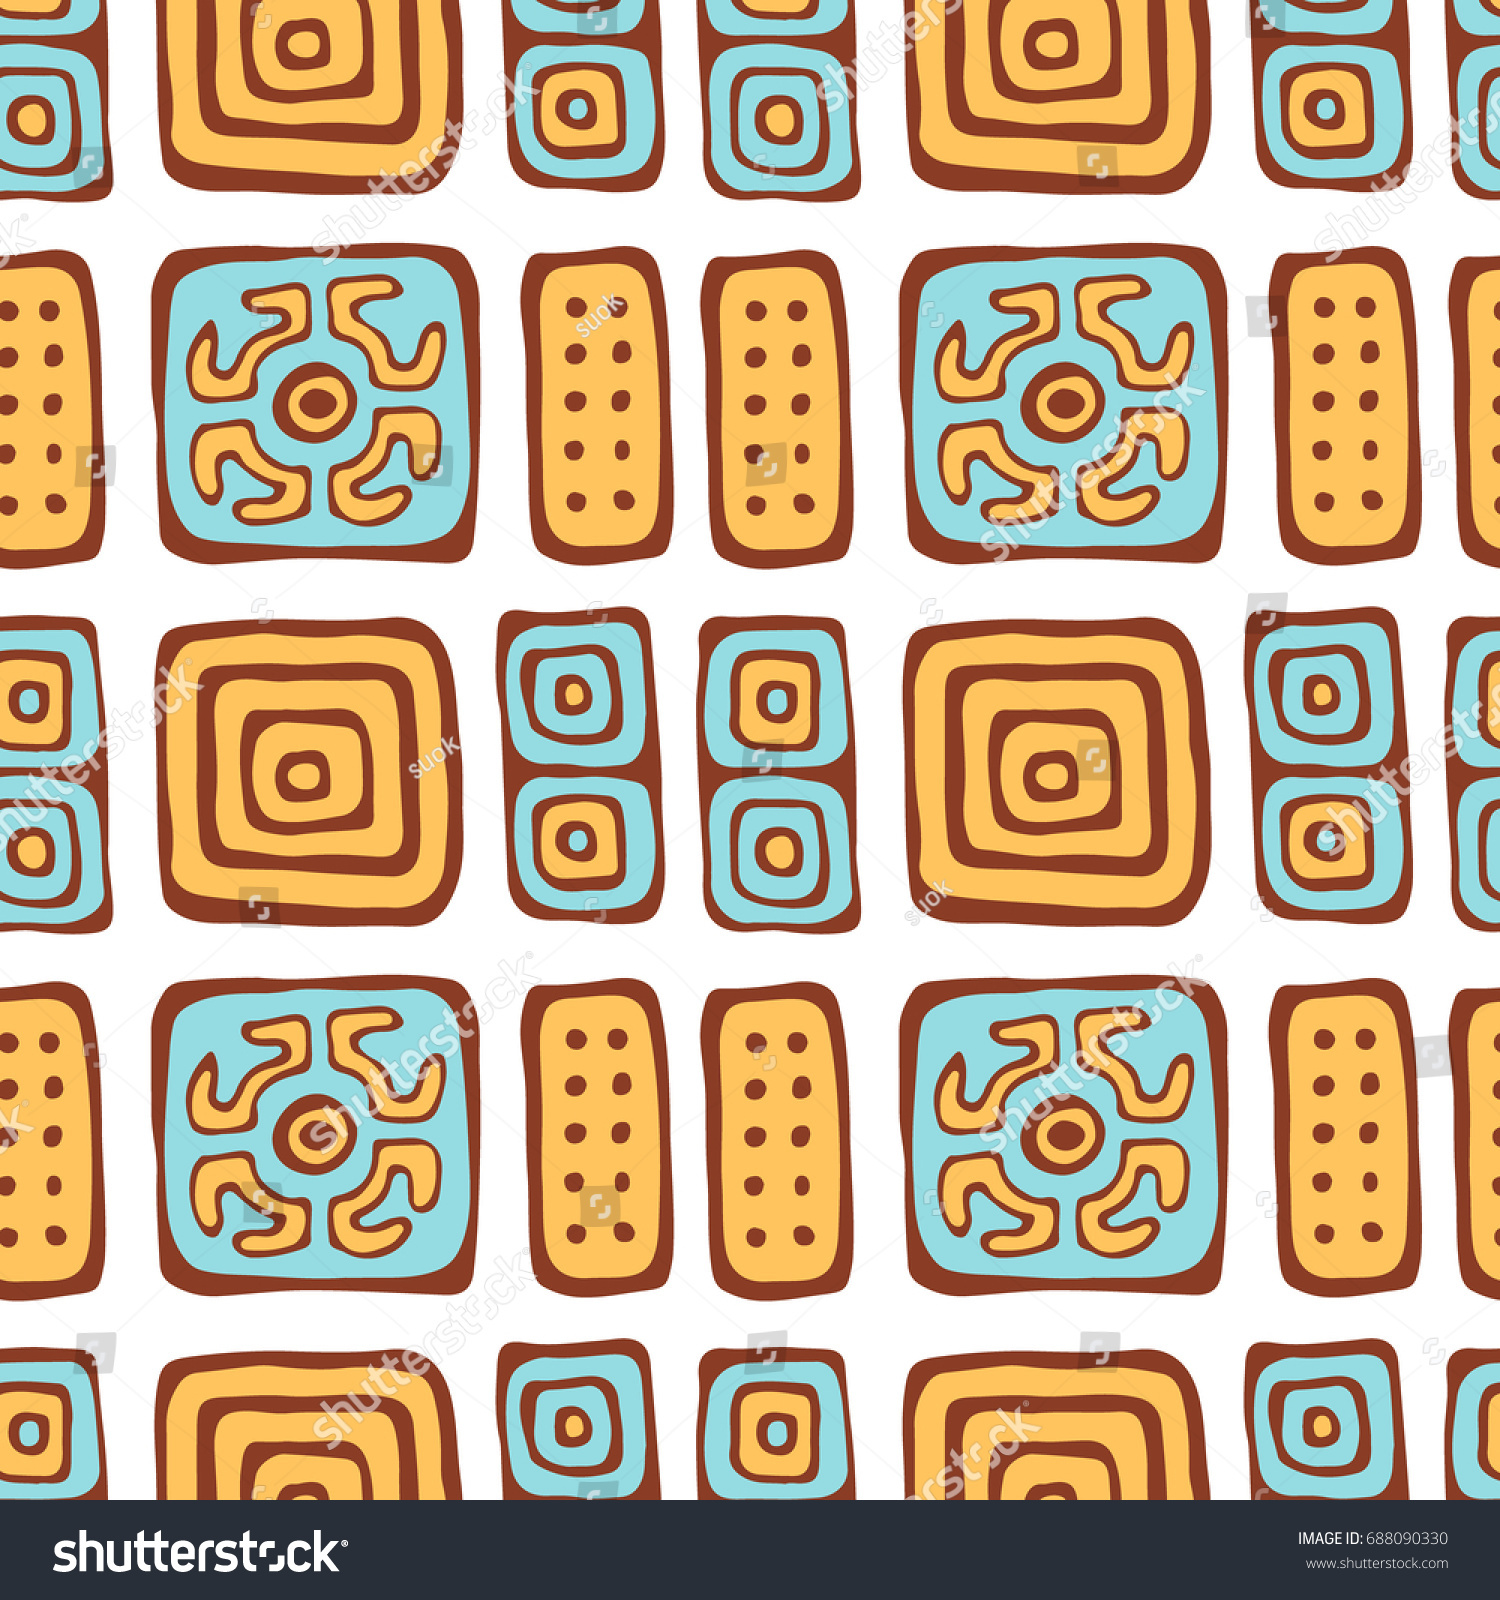 Native american hand drawn seamless pattern stock illustration native american hand drawn seamless pattern abstract illustration for fabric textile design greeting cards kristyandbryce Choice Image